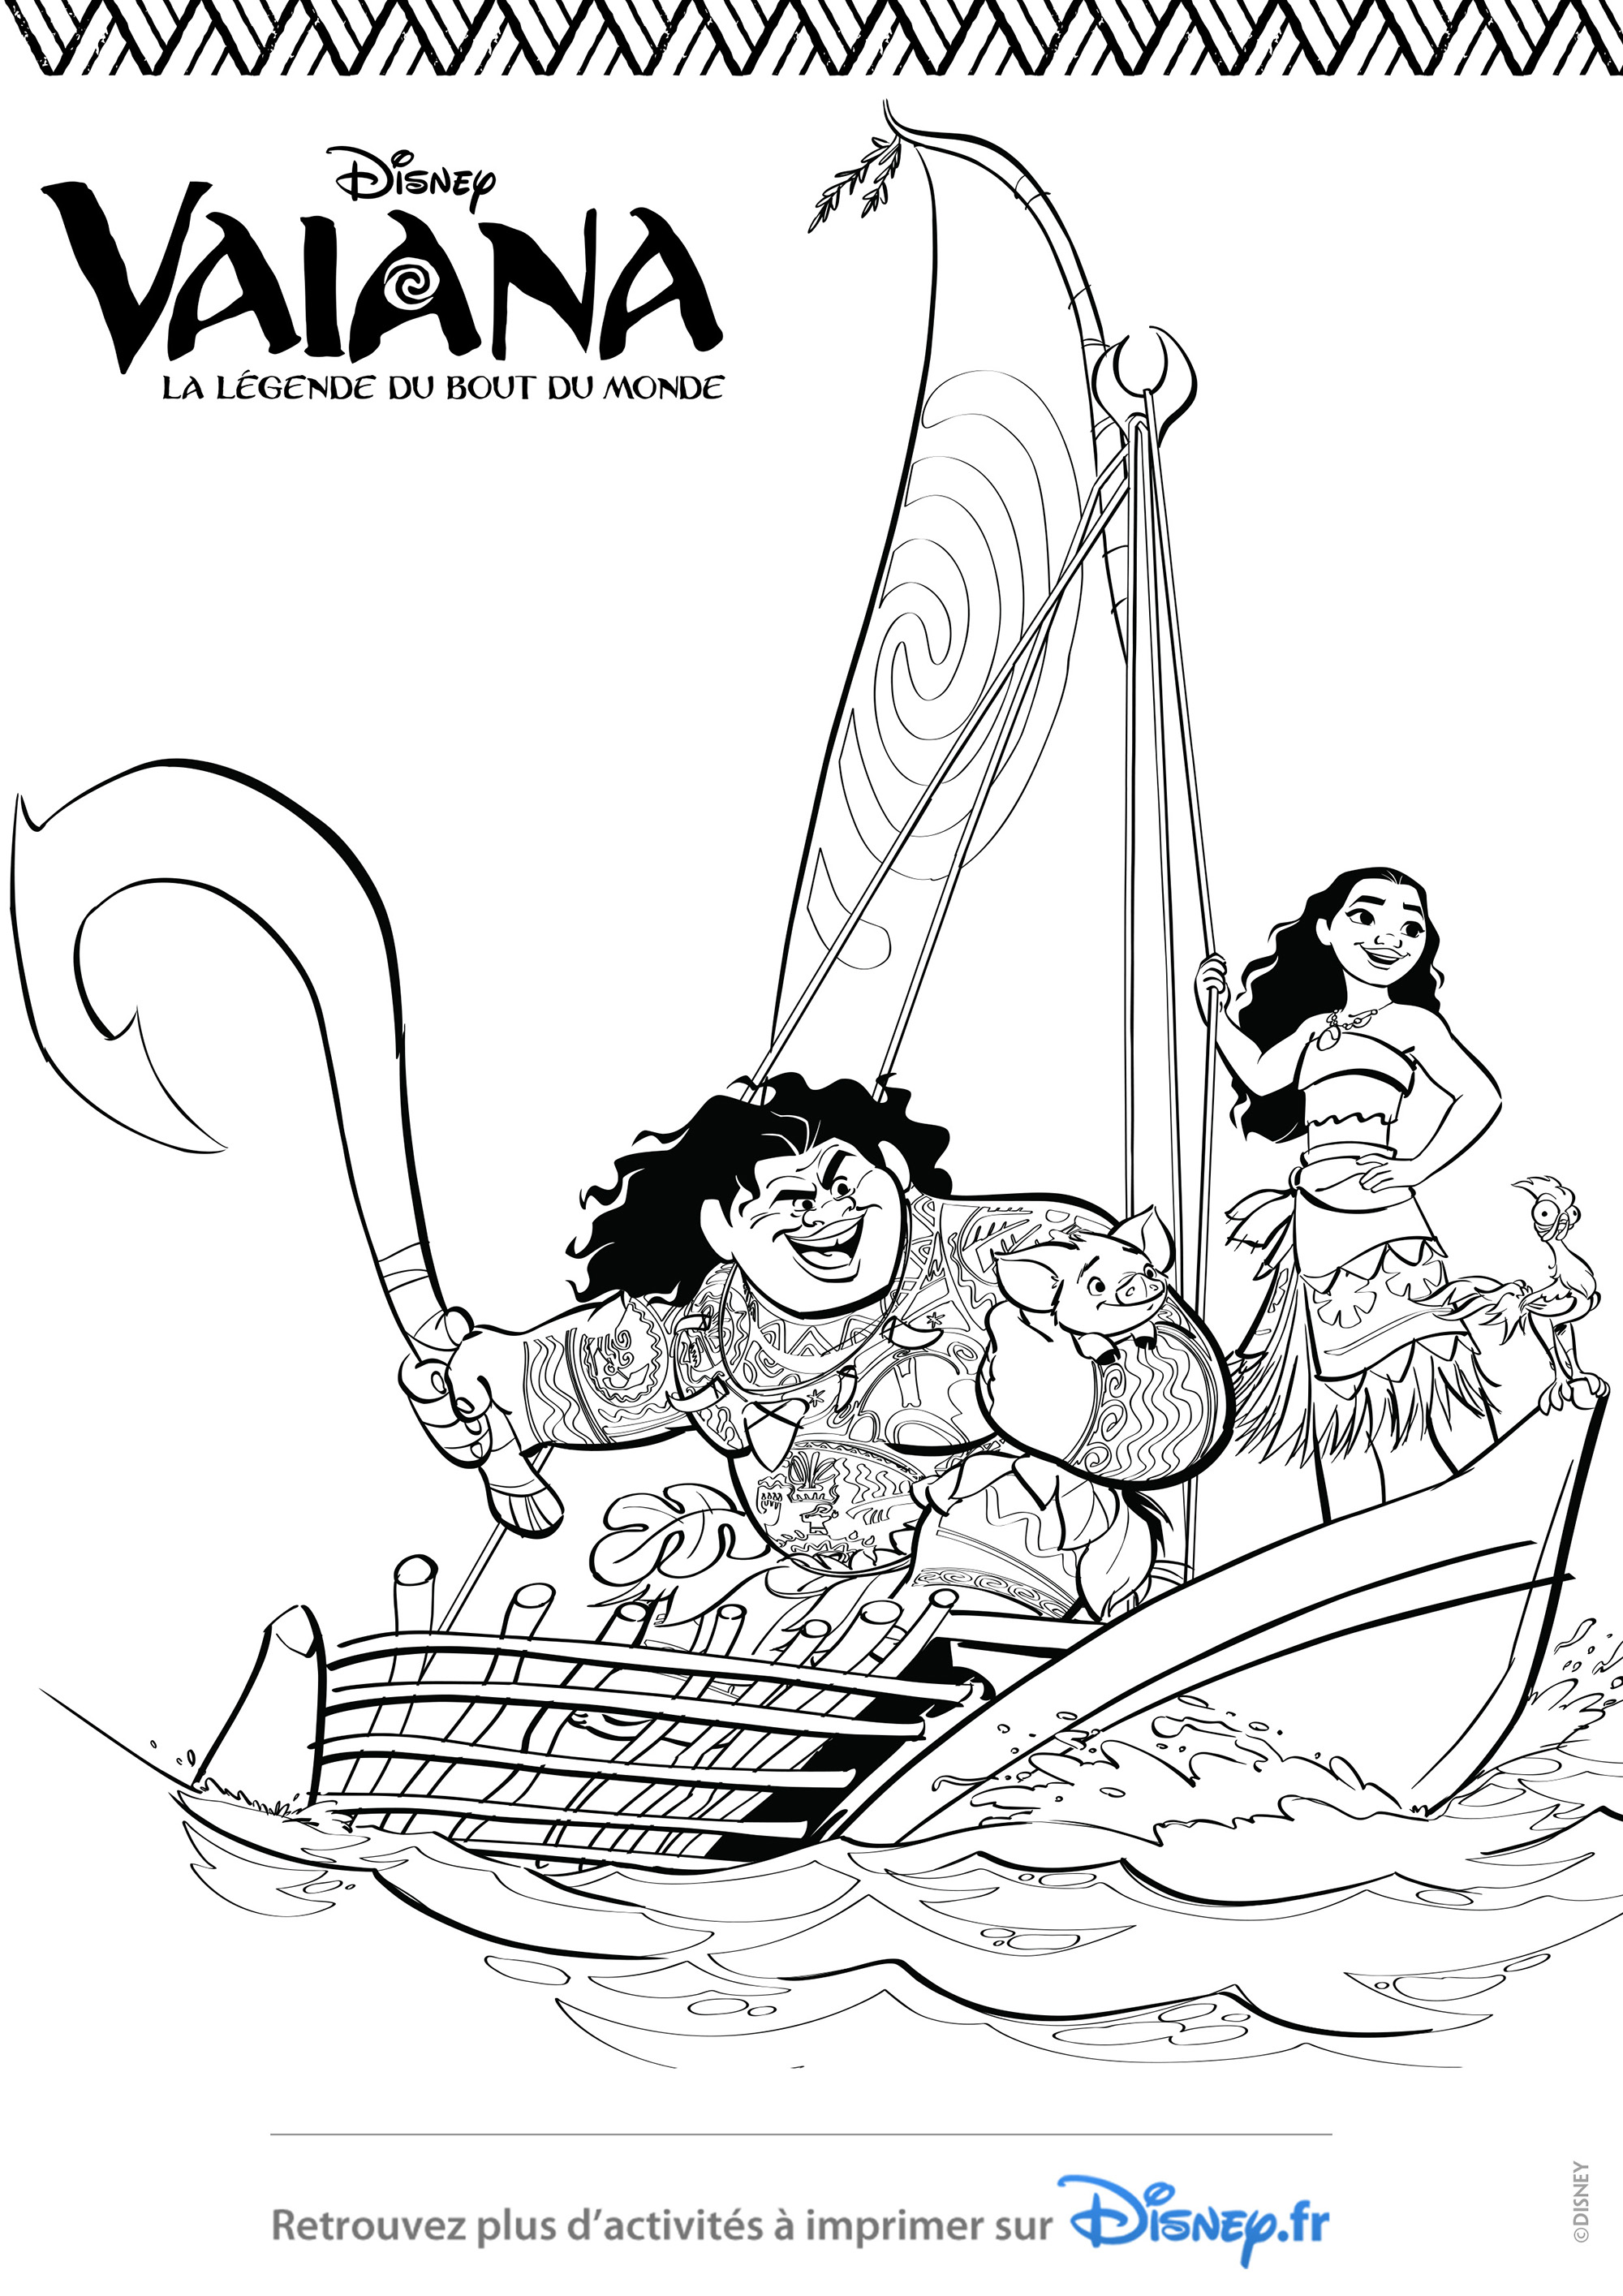 Simple Moana coloring page for children : Moana, Chief Tui in a boat